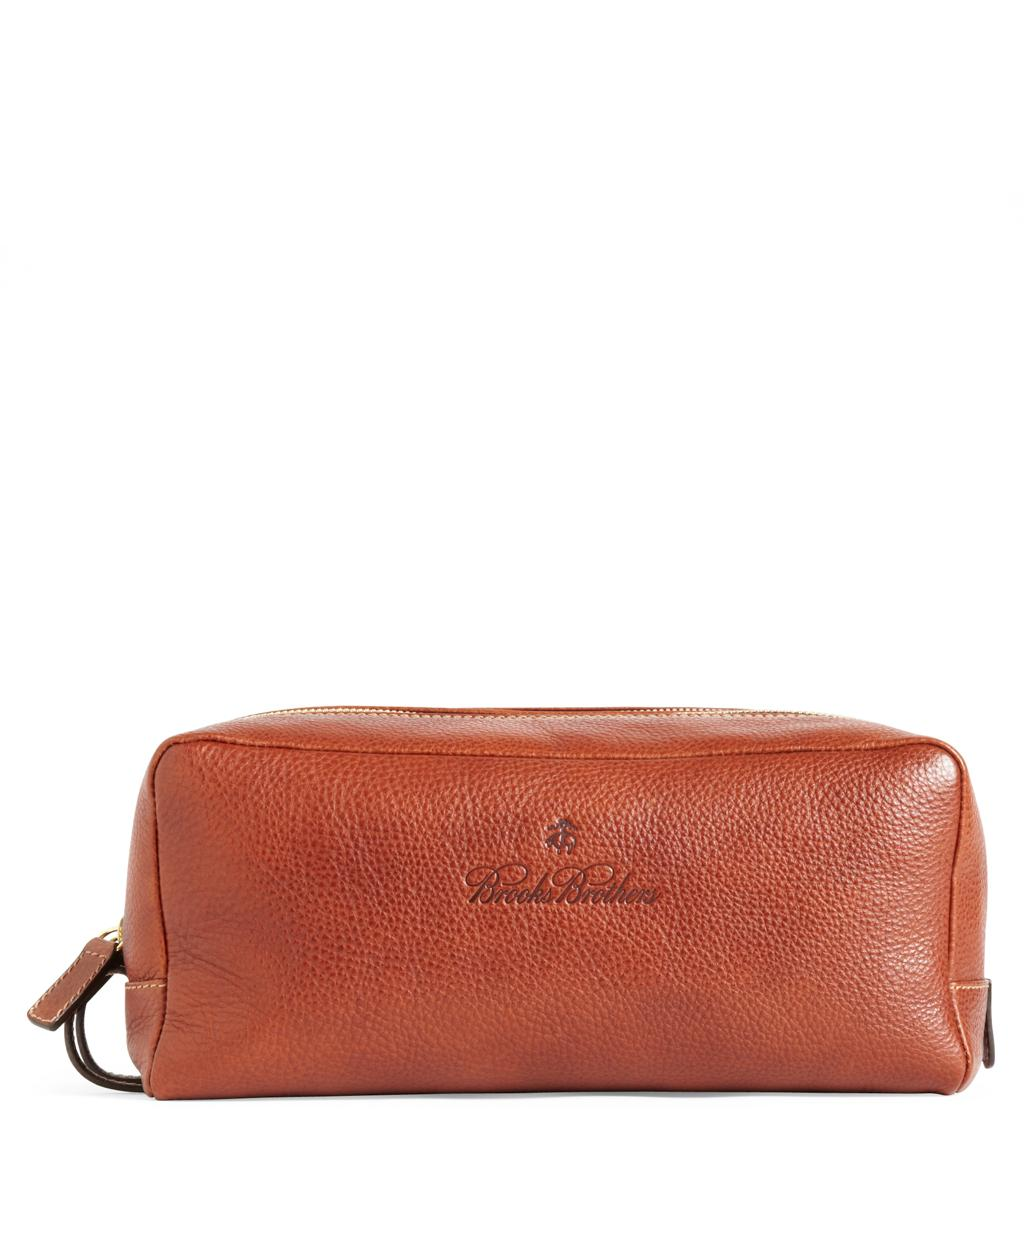 8b8daee1a3e Lyst - Brooks Brothers Leather Travel Toiletry Case in Brown for Men